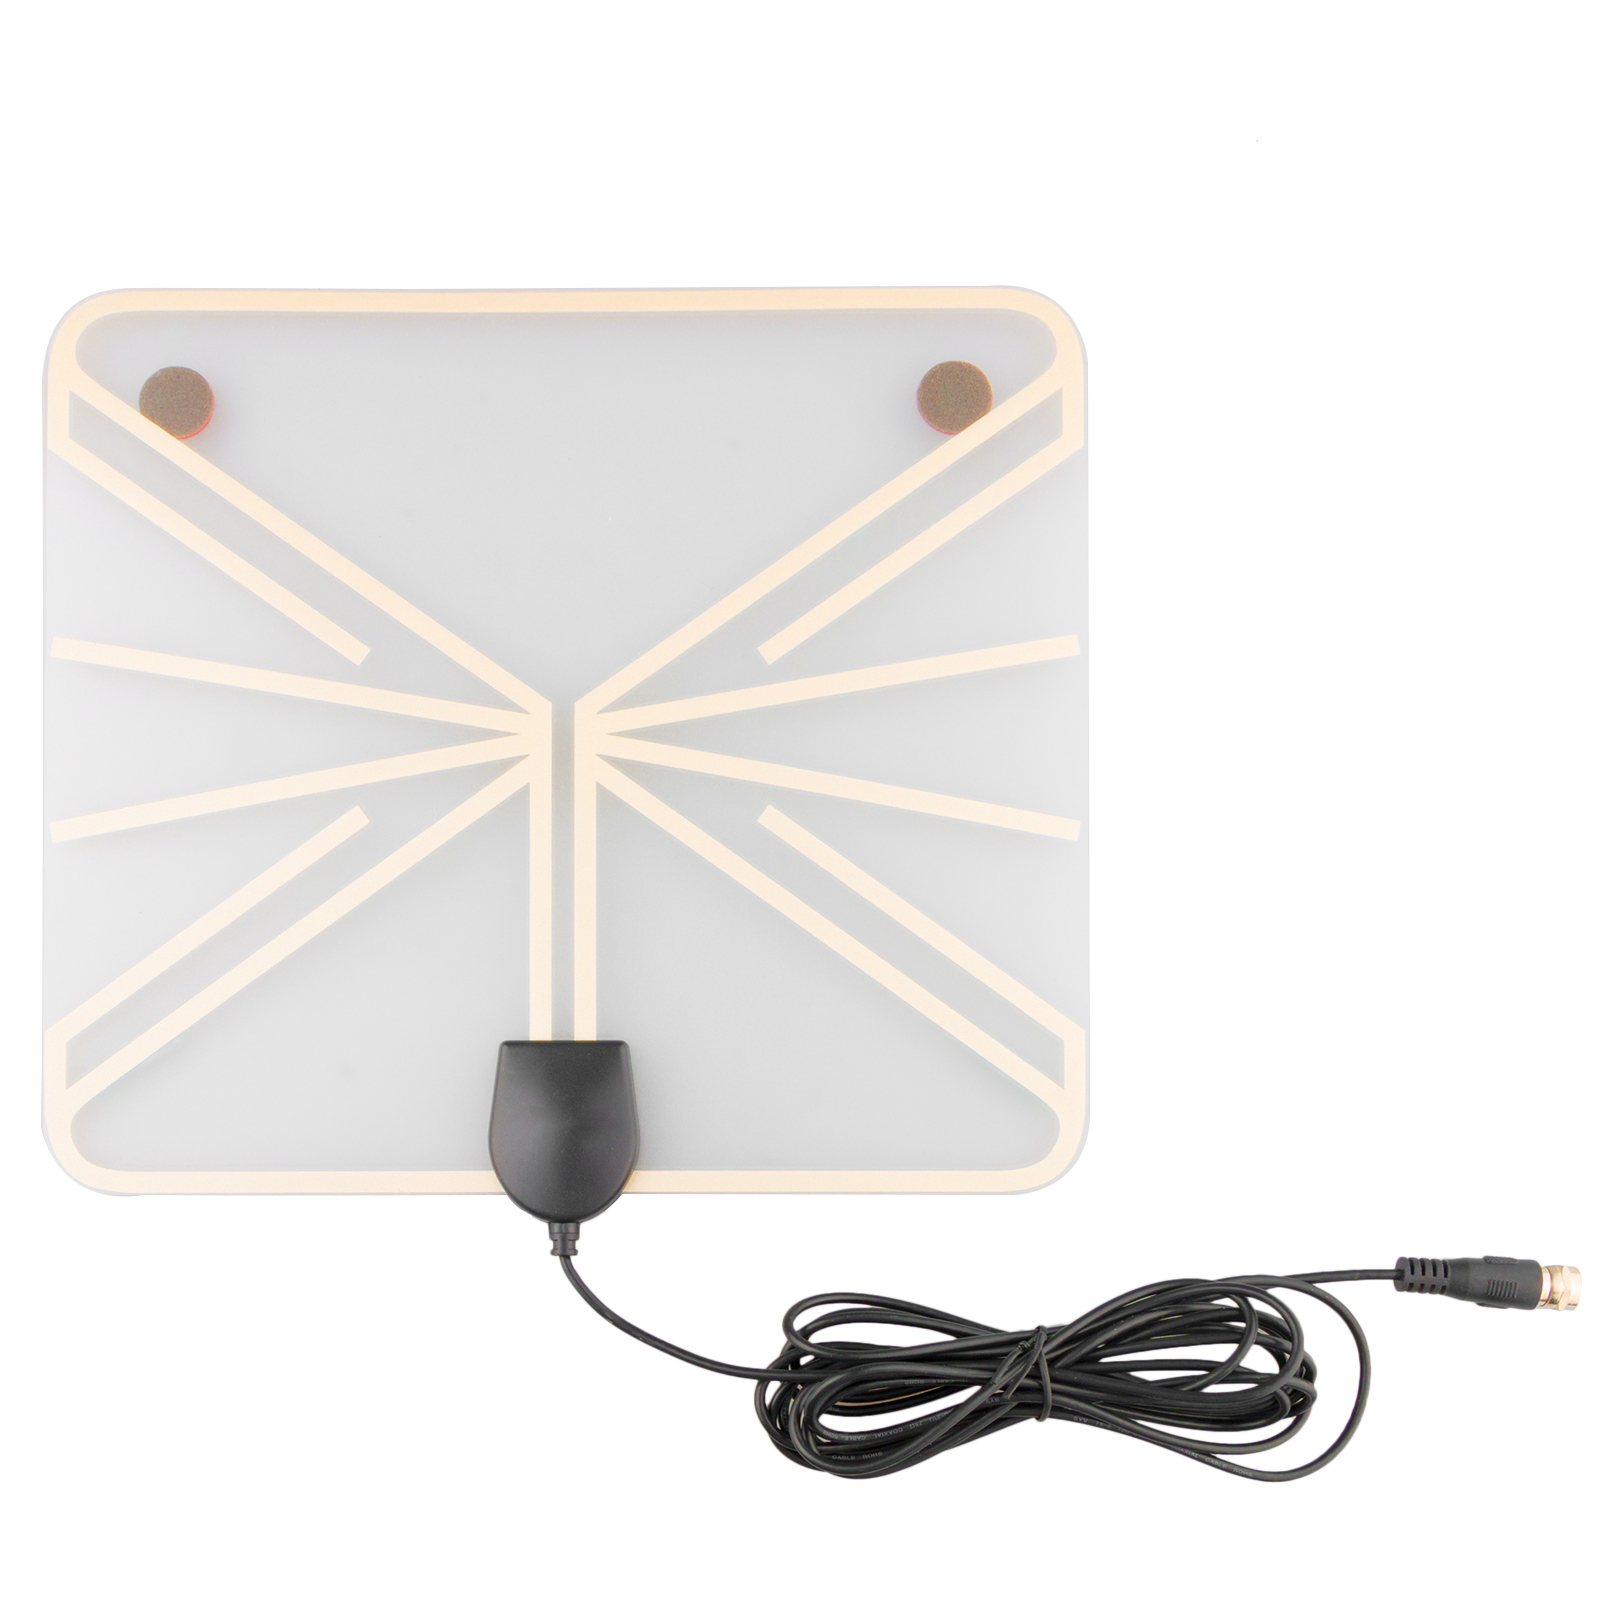 Amplified Outdoor Indoor TV Antenna,50 Mile Digital HDTV with 720p, 1080i, 1080p/ ATSC Amplifier Signal Booster Broadcast Clear Digital & HD shows ABC, CBS, NBC, Fox, The CW, and PBS